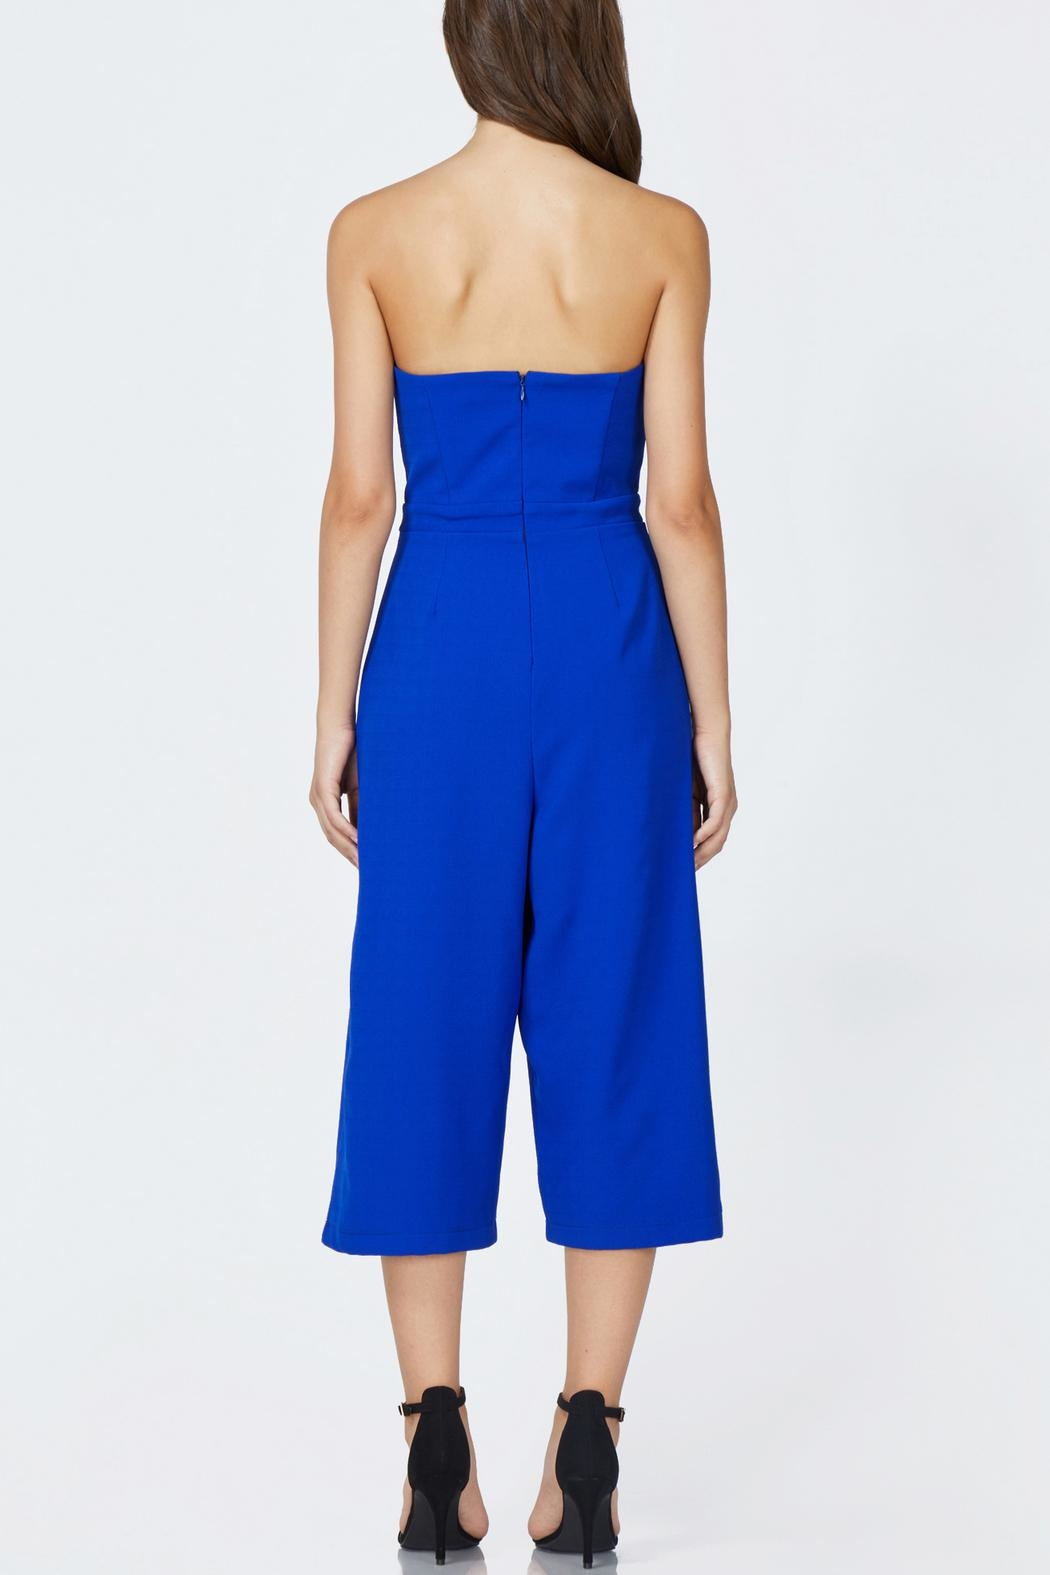 Adelyn Rae Julian Strapless Jumpsuit - Front Full Image